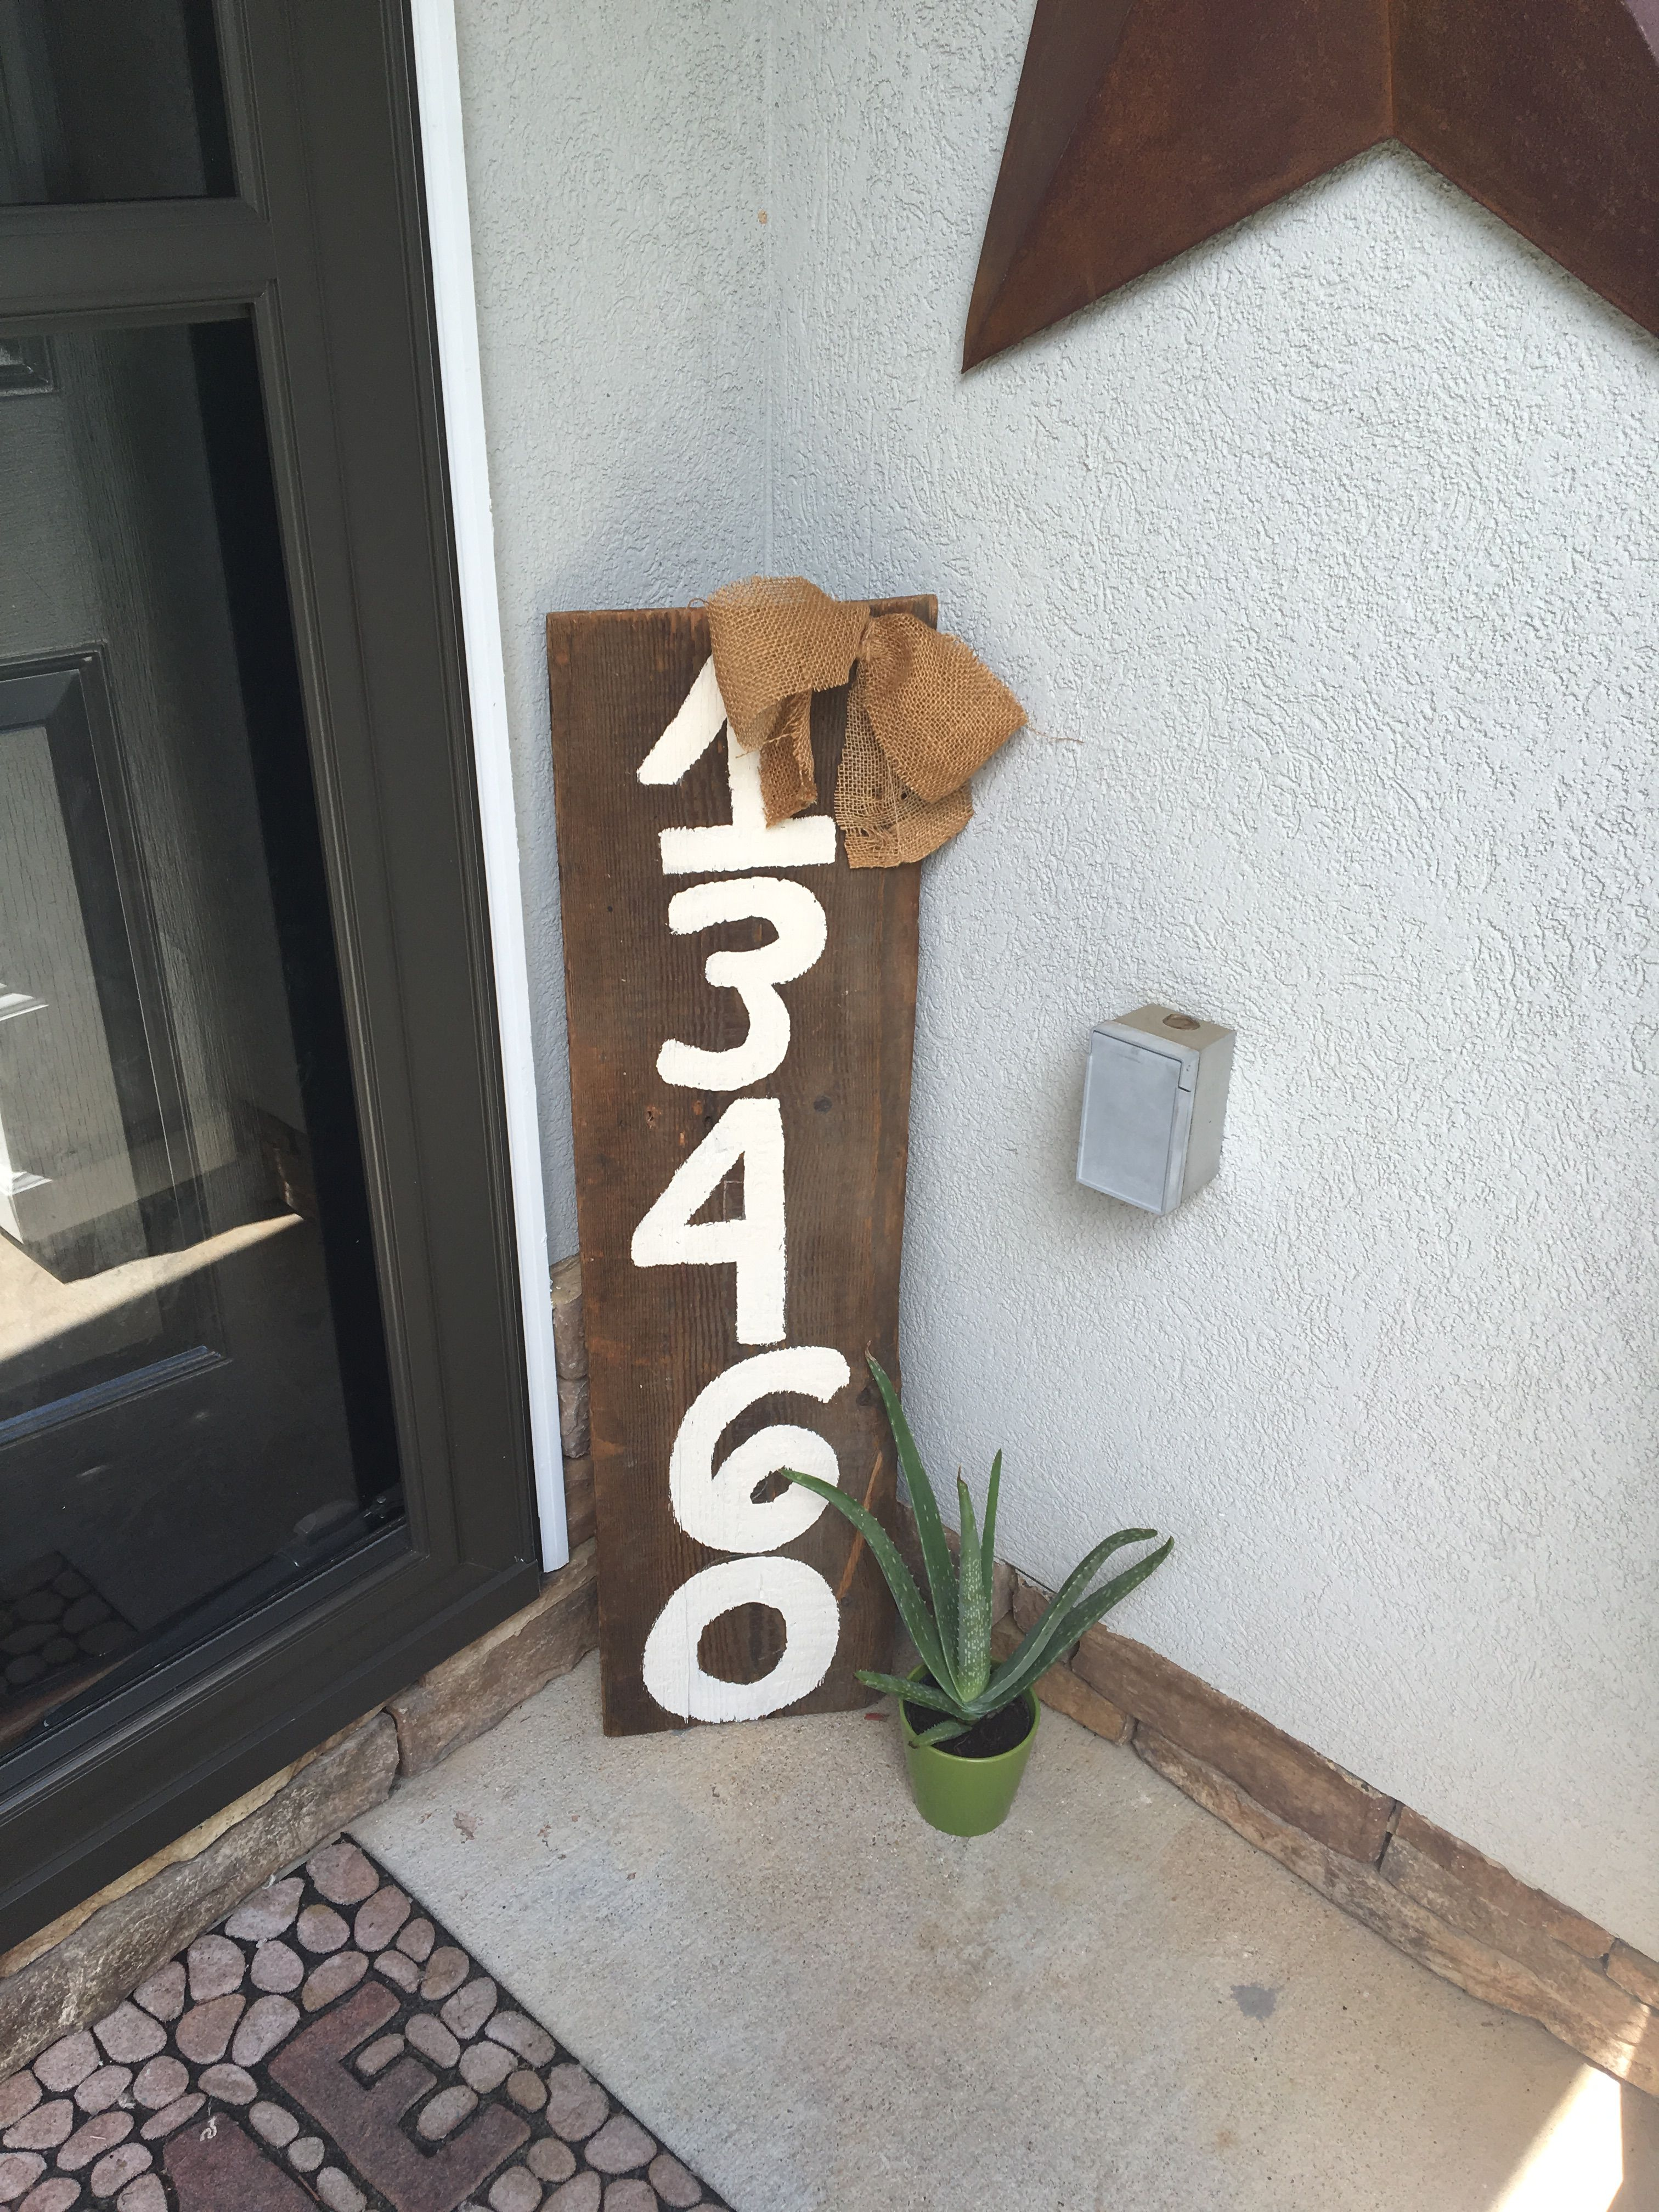 To take the place of traditional house numbers.